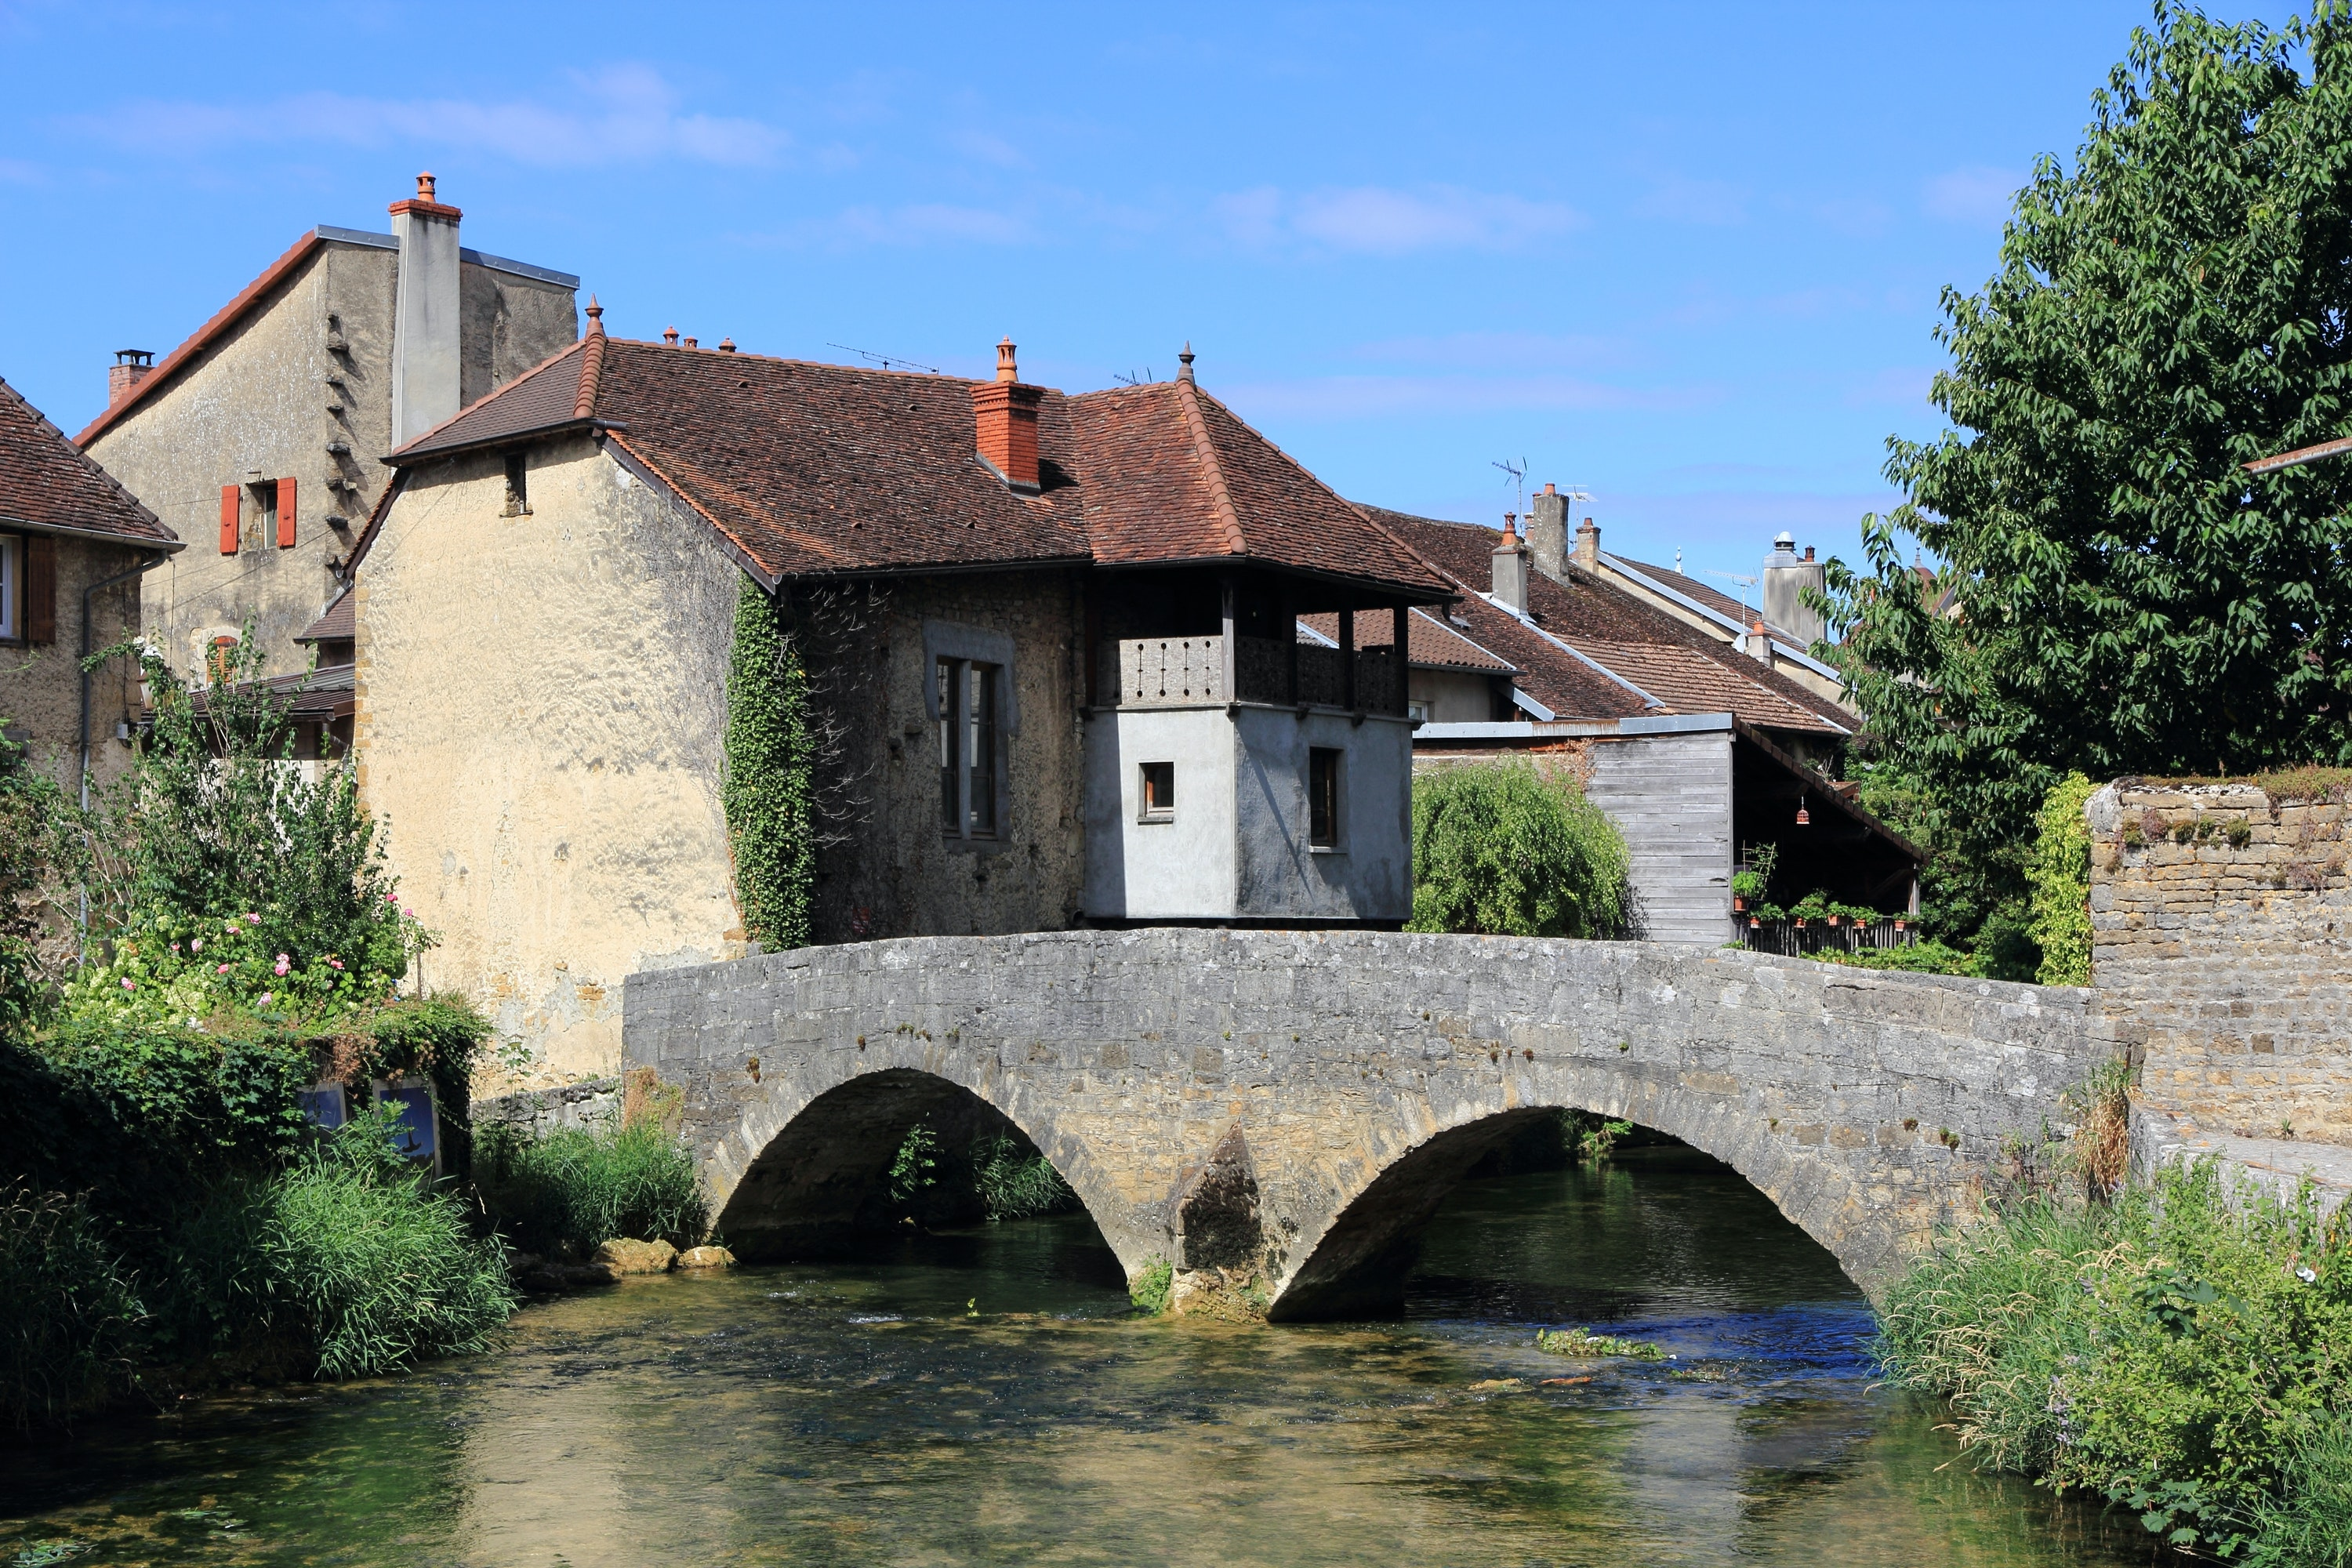 The village of Arbois is home to several excellent restaurants.